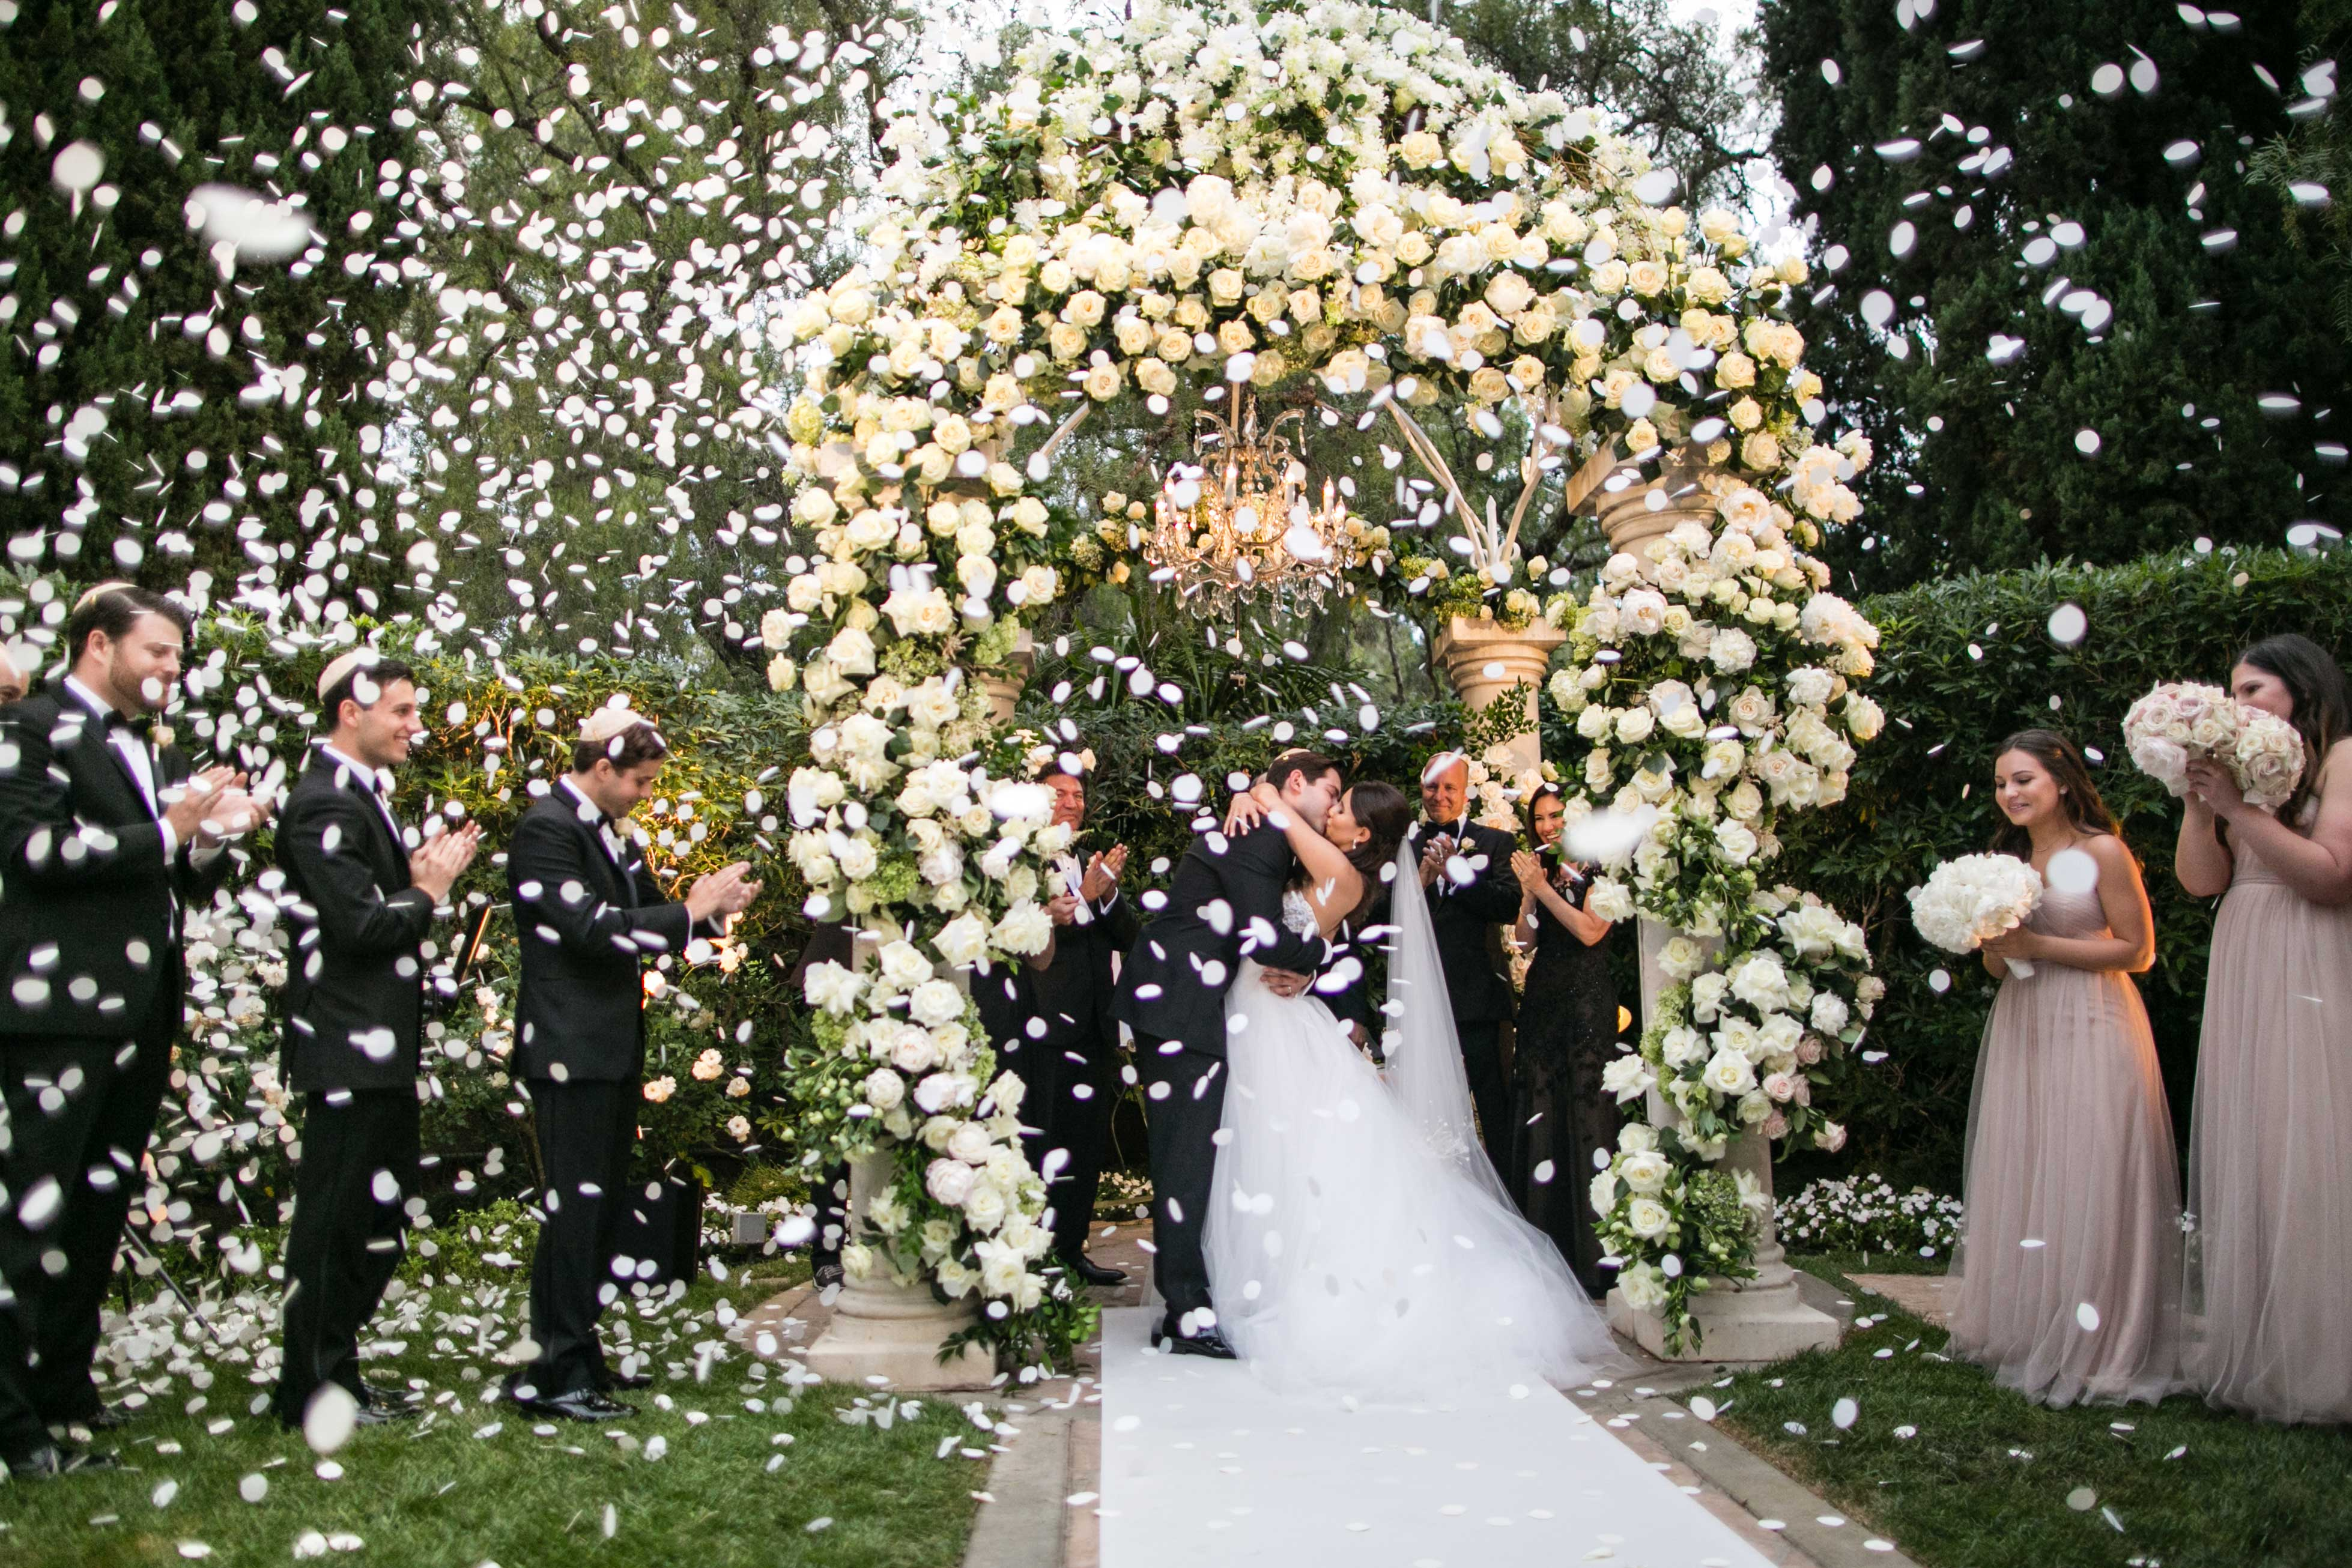 Flower petal explosion at wedding ceremony